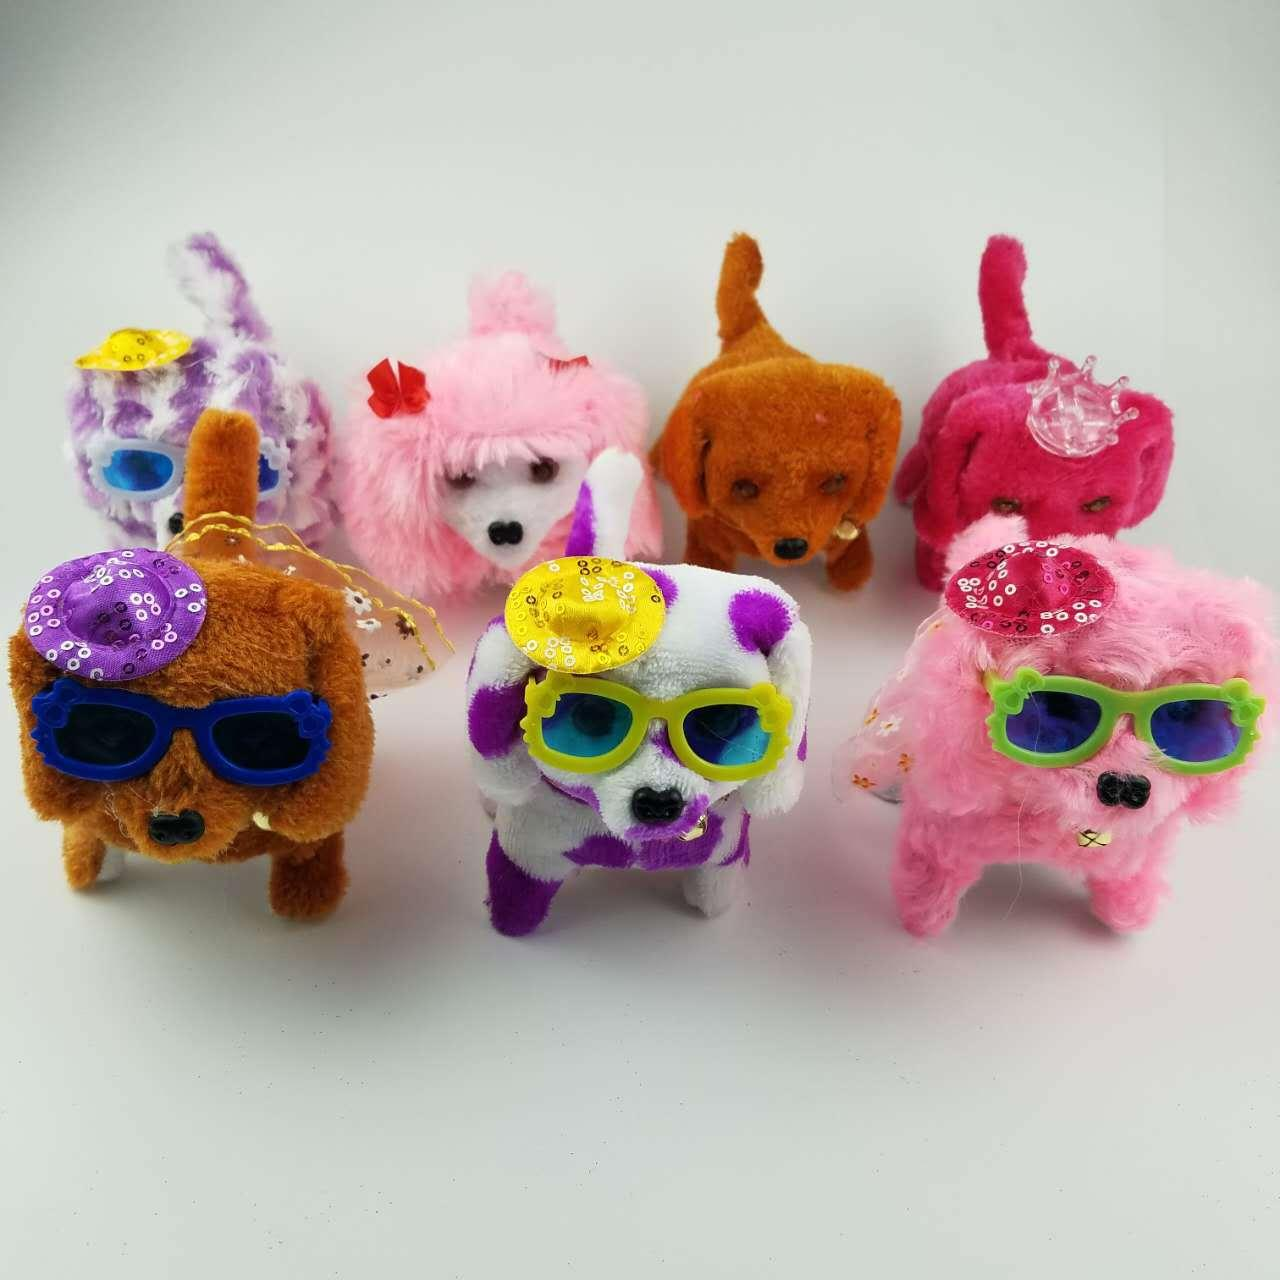 The factory sells plush, shining, forward and backward, dog wearing hat glasses and skirts will call the wholesale of electric toys